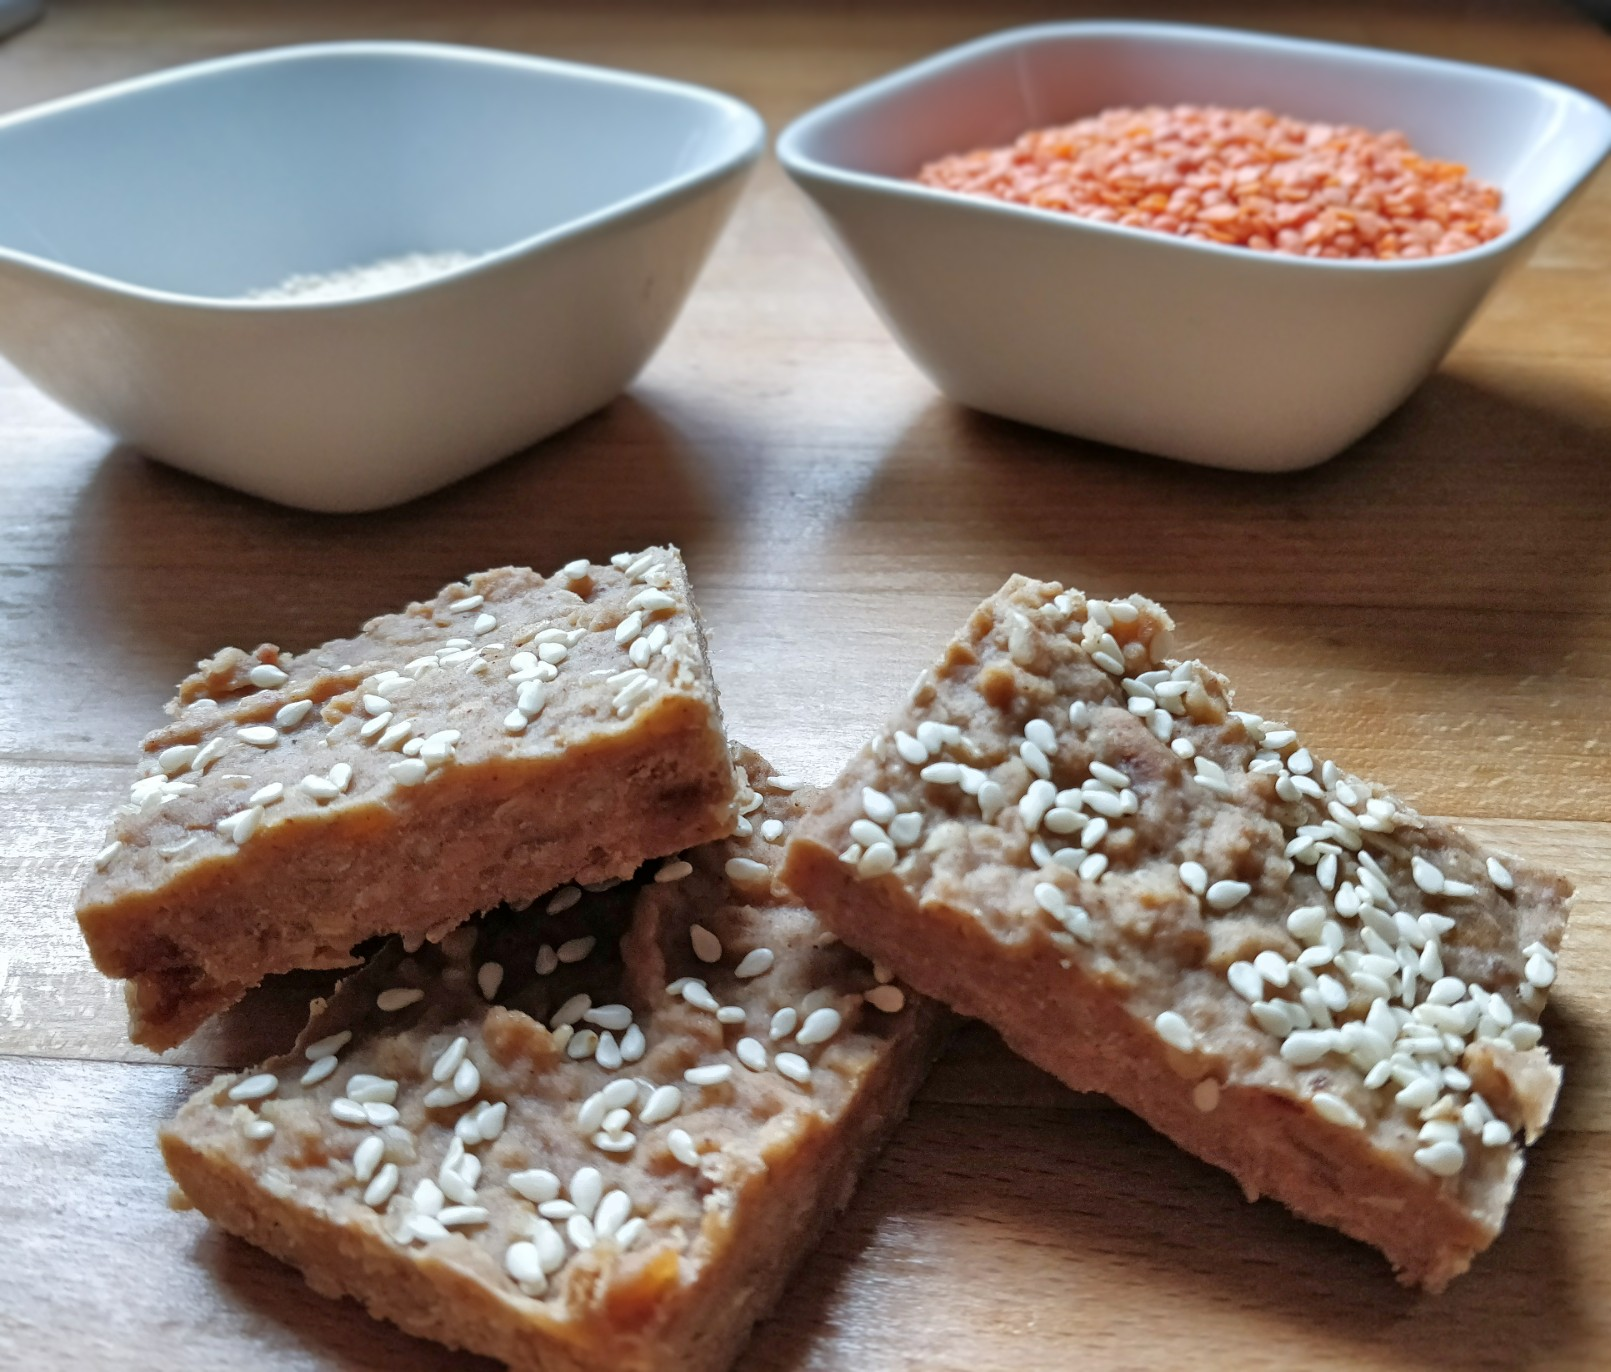 Lentil, date and cashew nut healthy energy bars for toddlers, kids, baby-led weaning, on the go snacks and delicious treats. Dairy free, cmpa friendly, recipe ideas